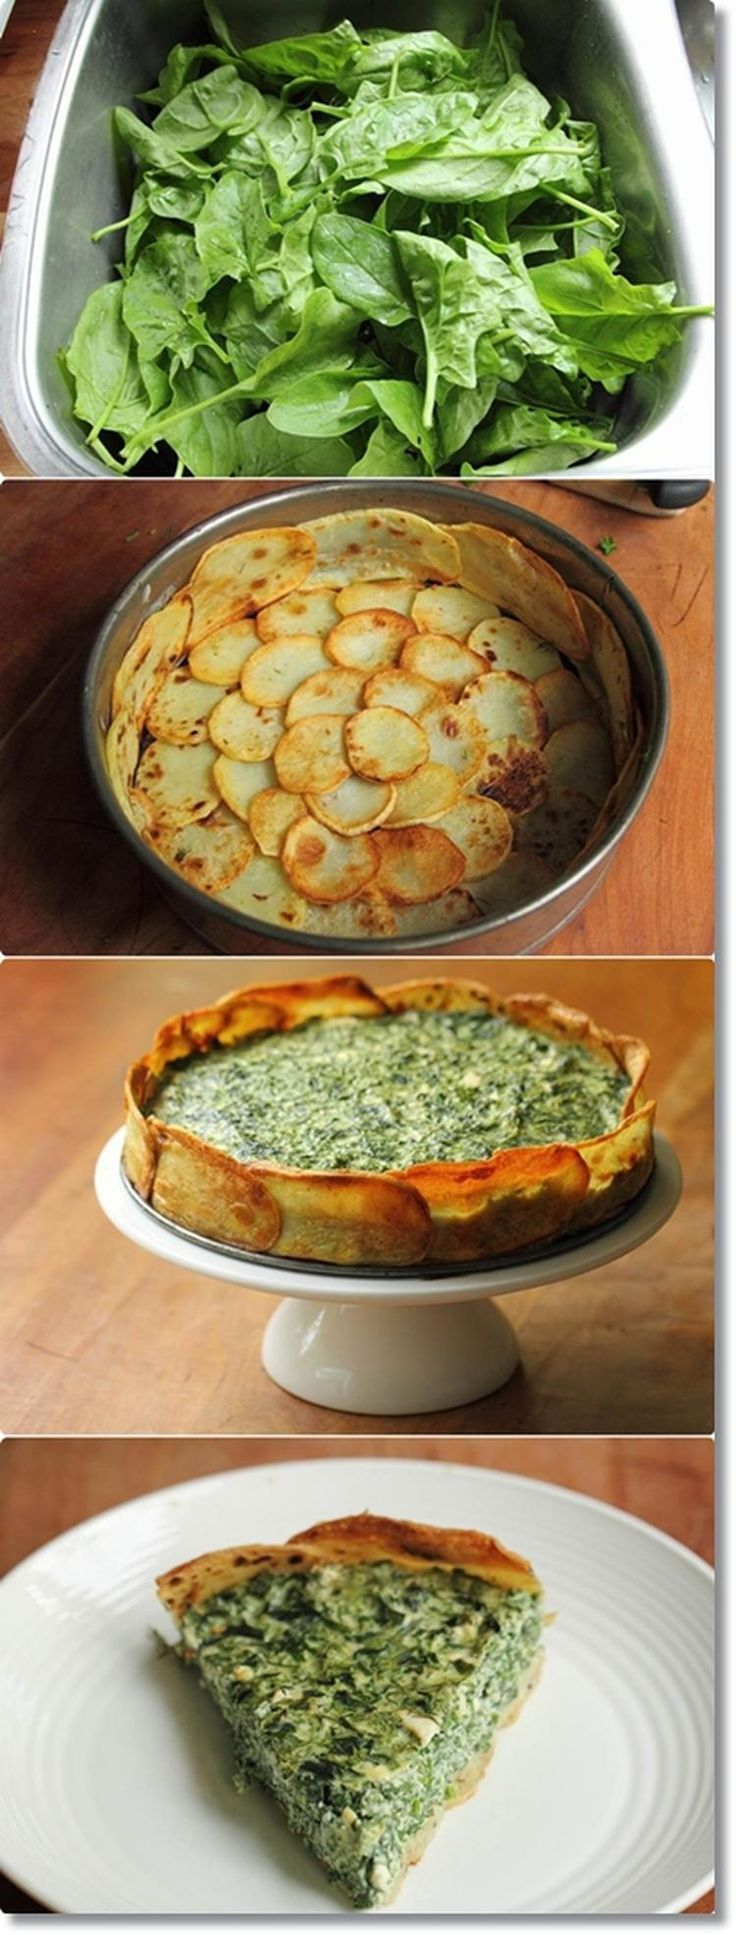 spinat ricotta tarte rezept herzhaft und vegetarisch spinach cottage cheese rec rezepte. Black Bedroom Furniture Sets. Home Design Ideas